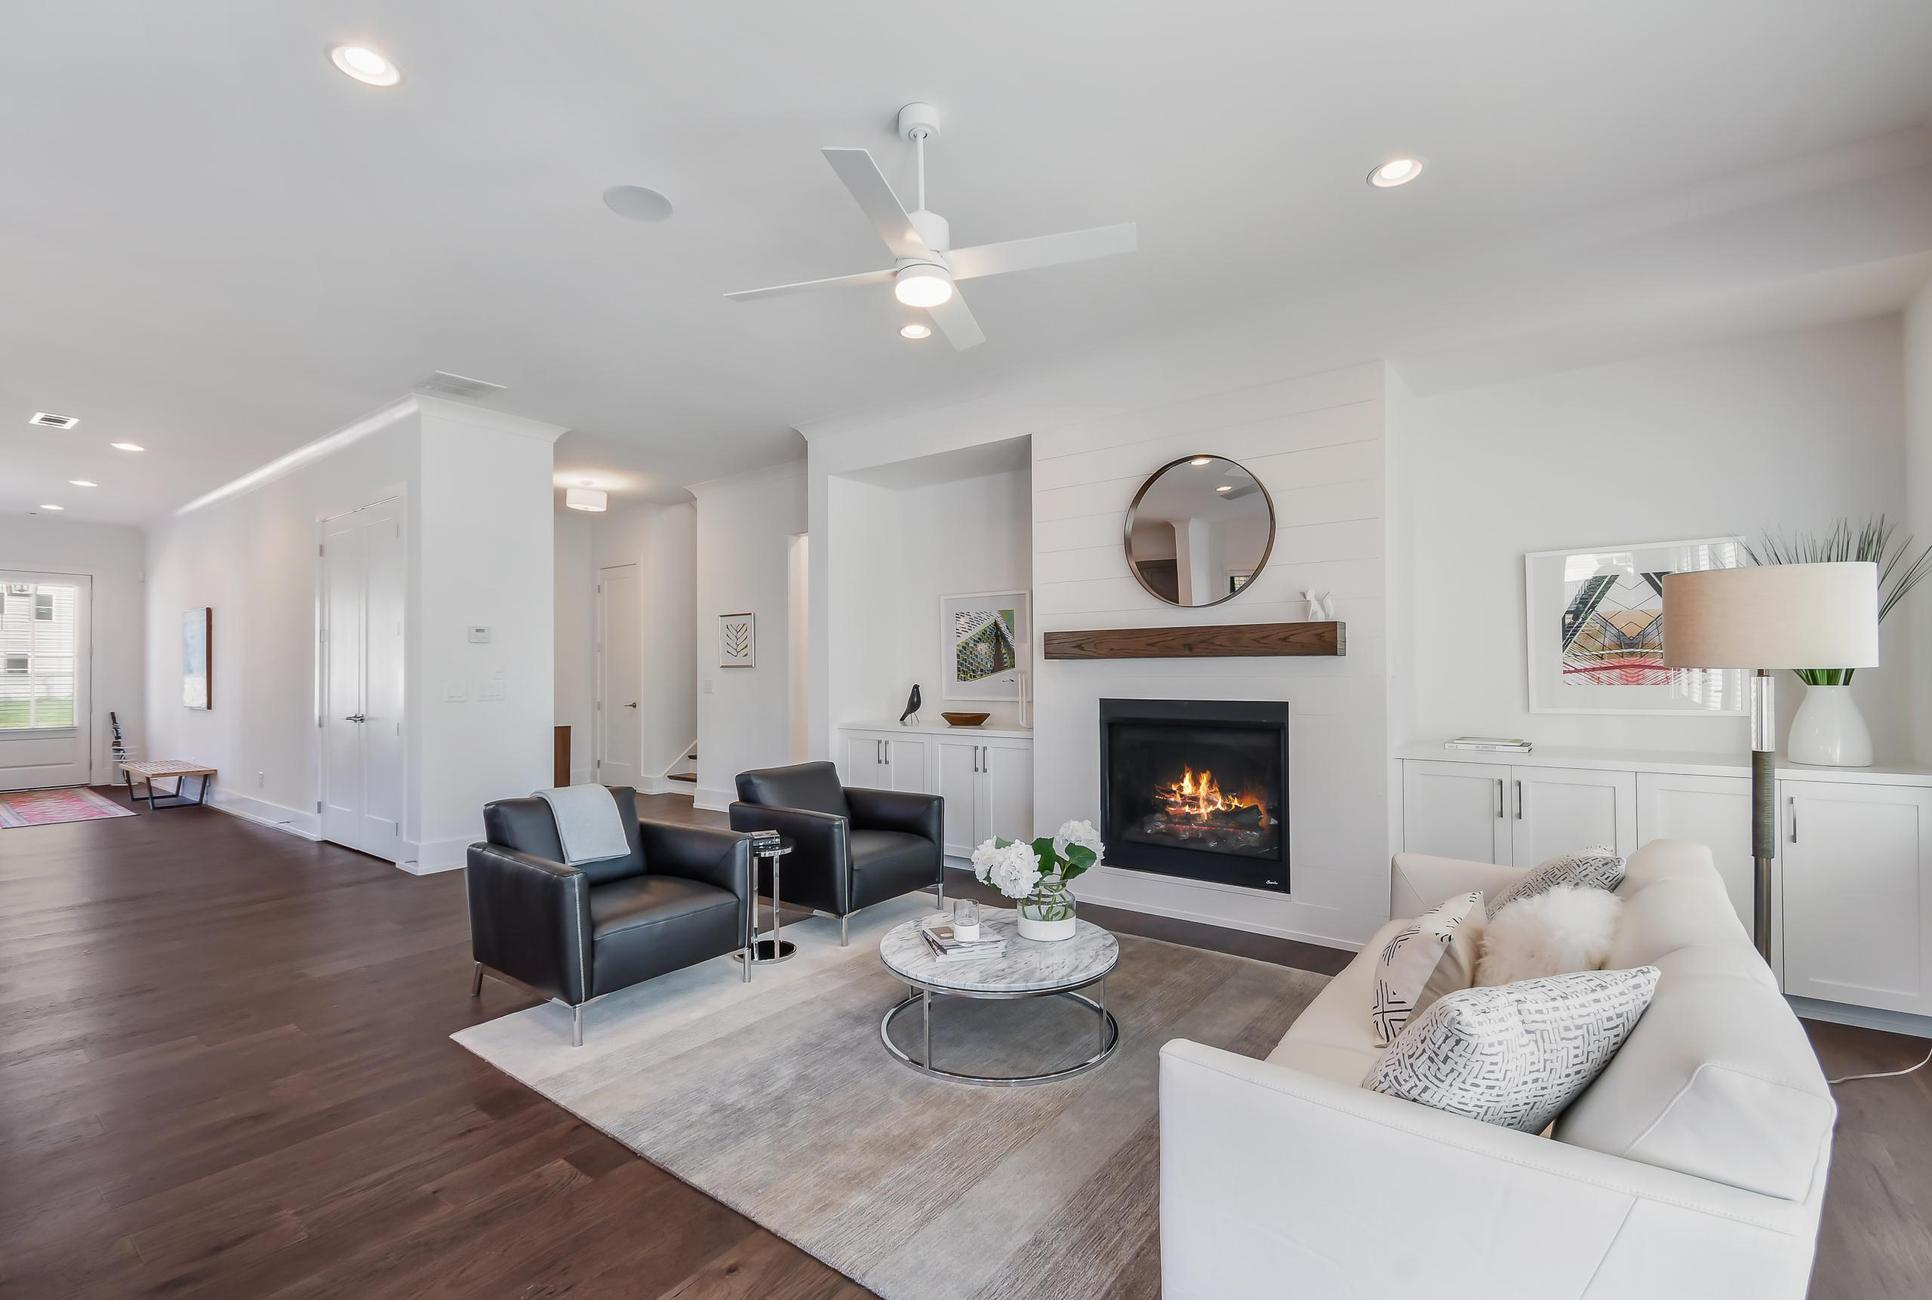 New Homes at Twelve Oaks:Spacious Open Plans with 10' Ceilings